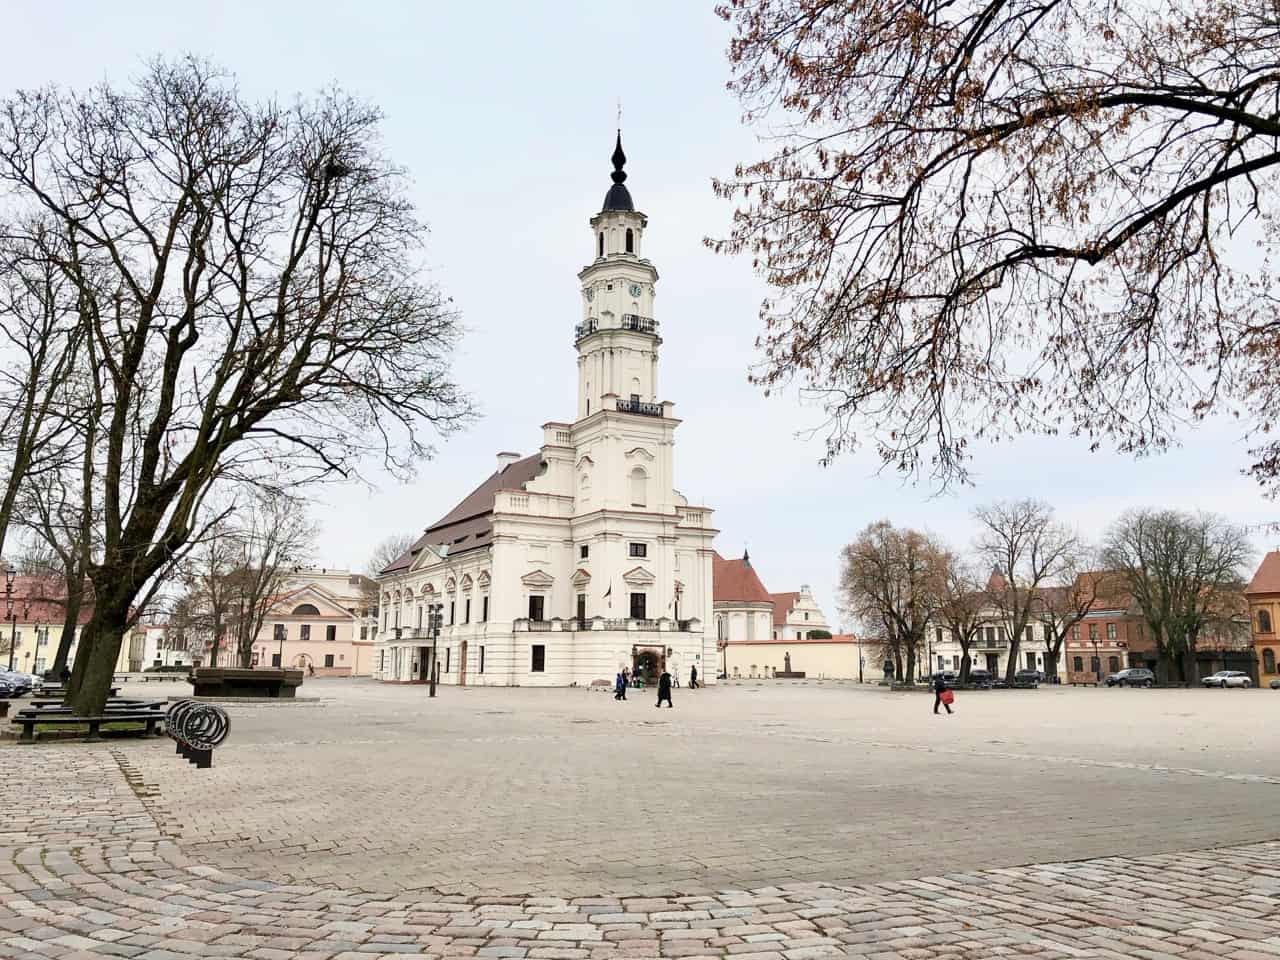 Things to see on a day trip to Kaunas, Lithuania